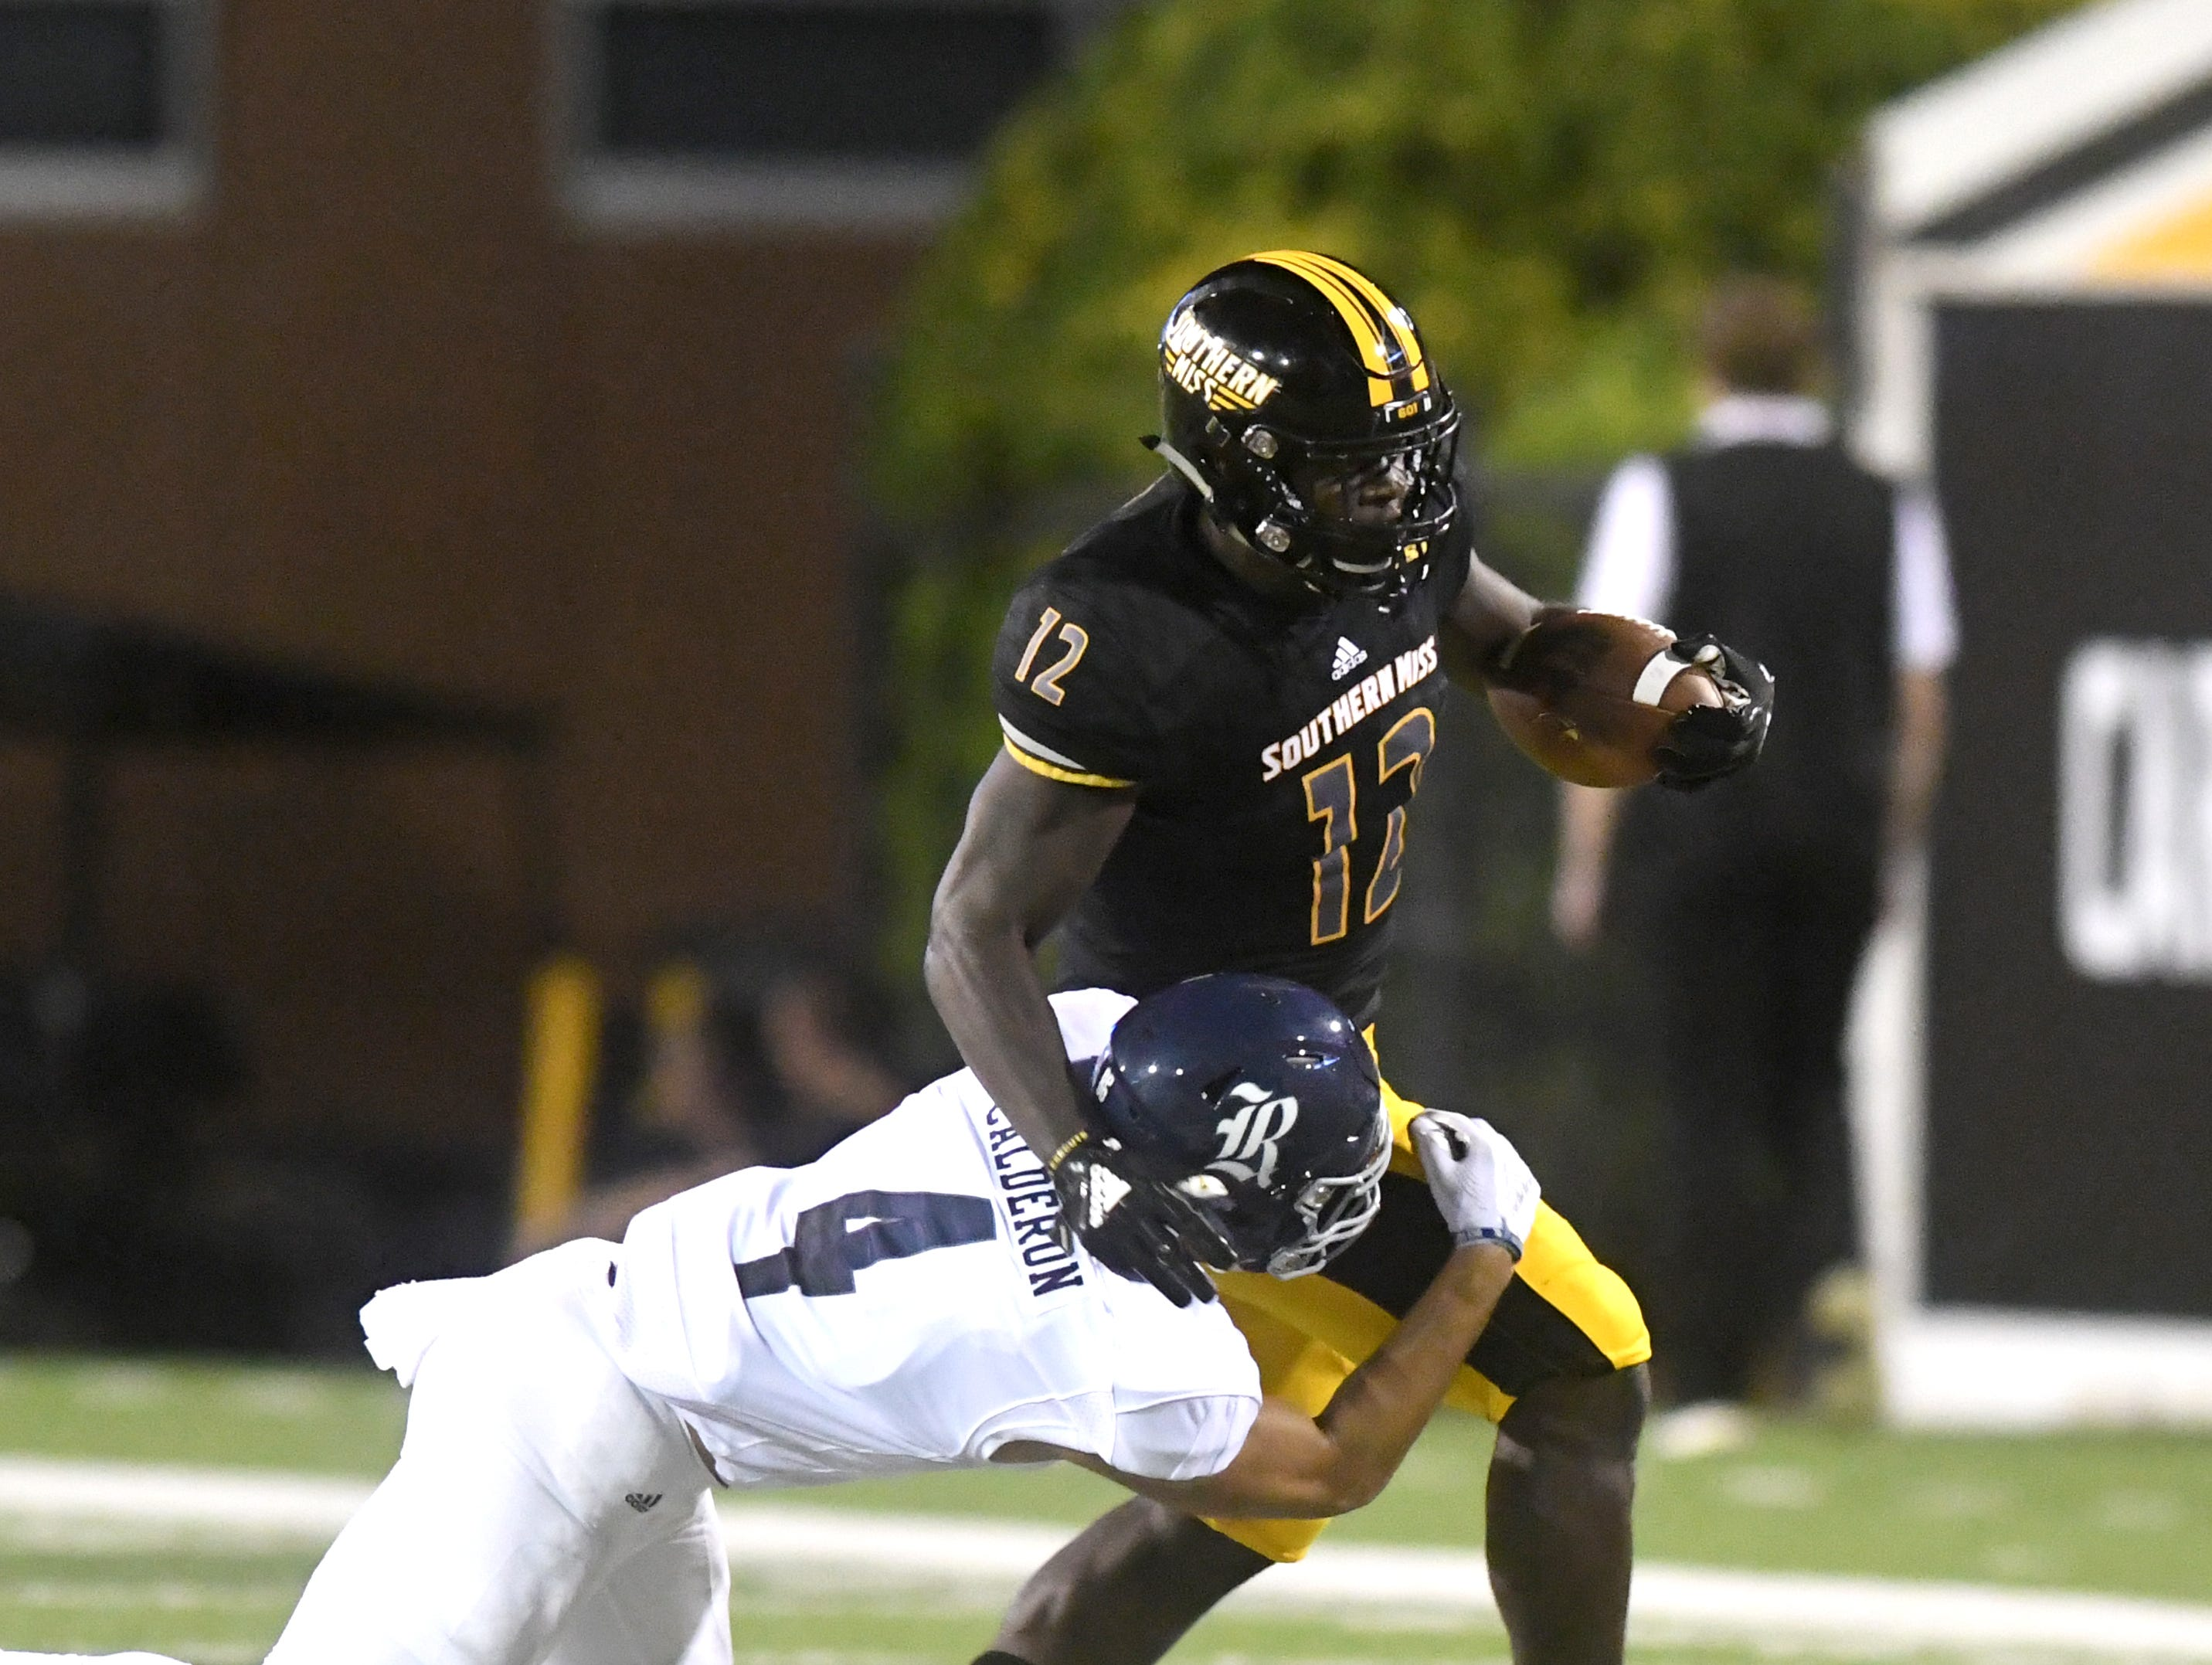 Southern Miss running back Steven Anderson carries the ball in a game against Rice at M.M. Roberts Stadium on Saturday, September 22, 2018.